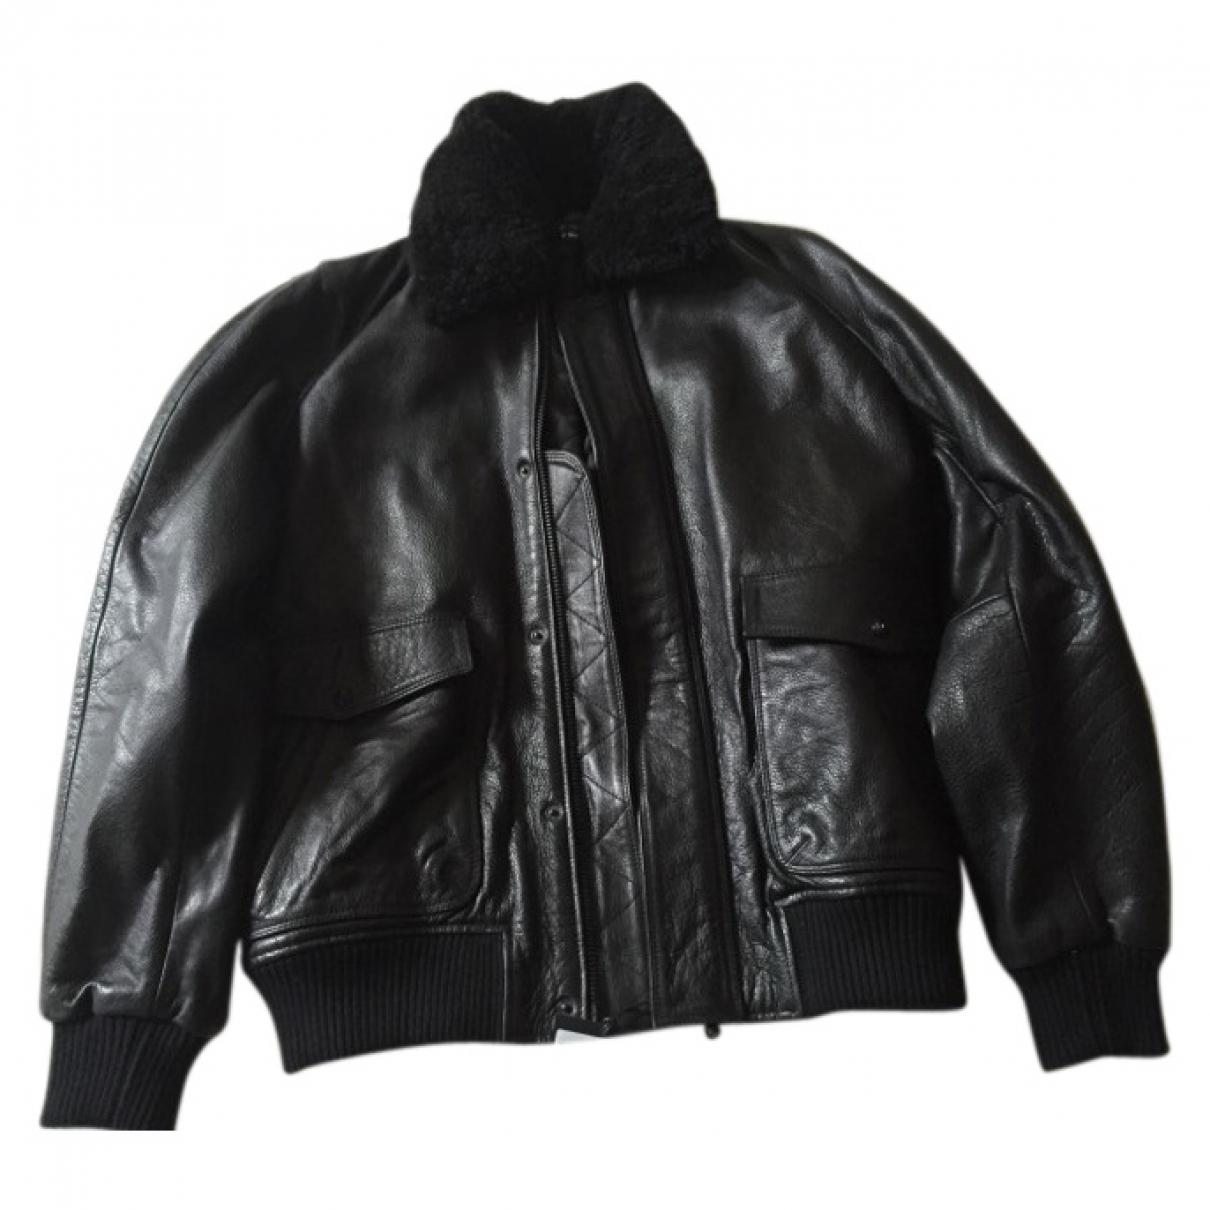 e7129c5384 Lyst - The Kooples Leather Jacket in Black for Men